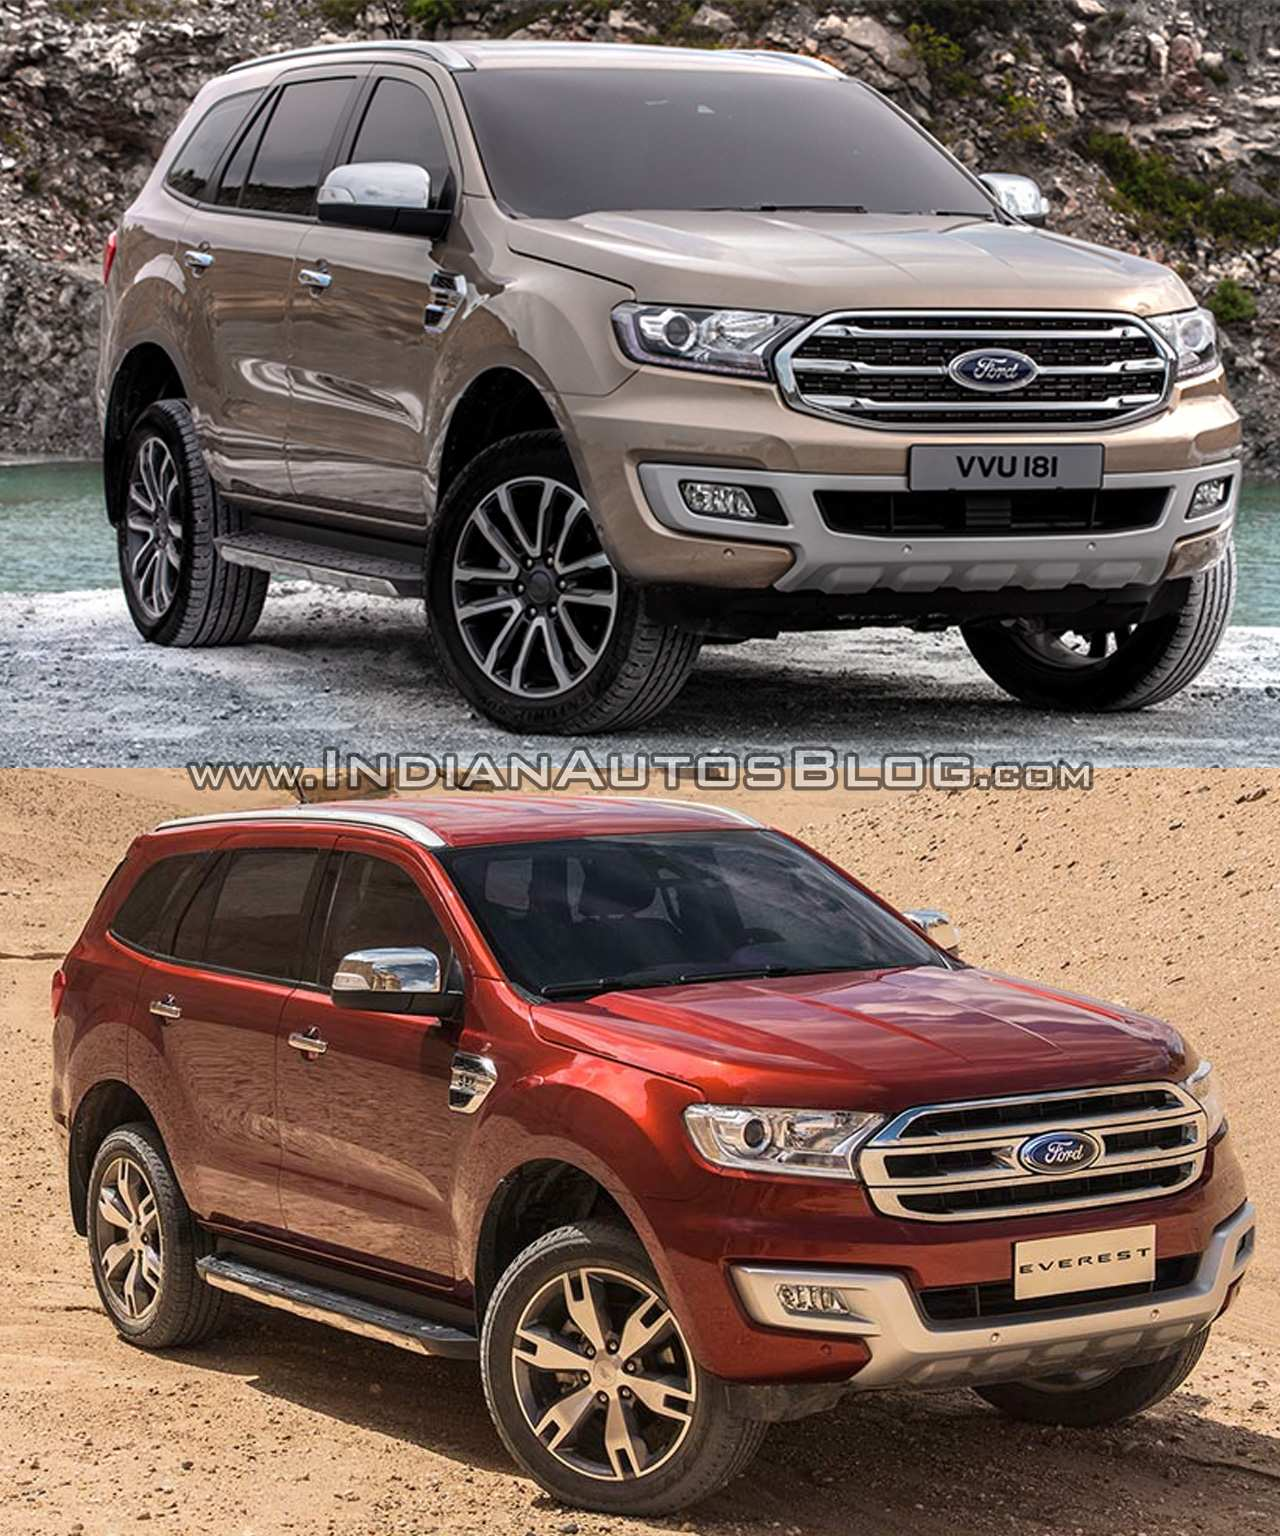 44 The Best 2019 Ford Everest Spesification